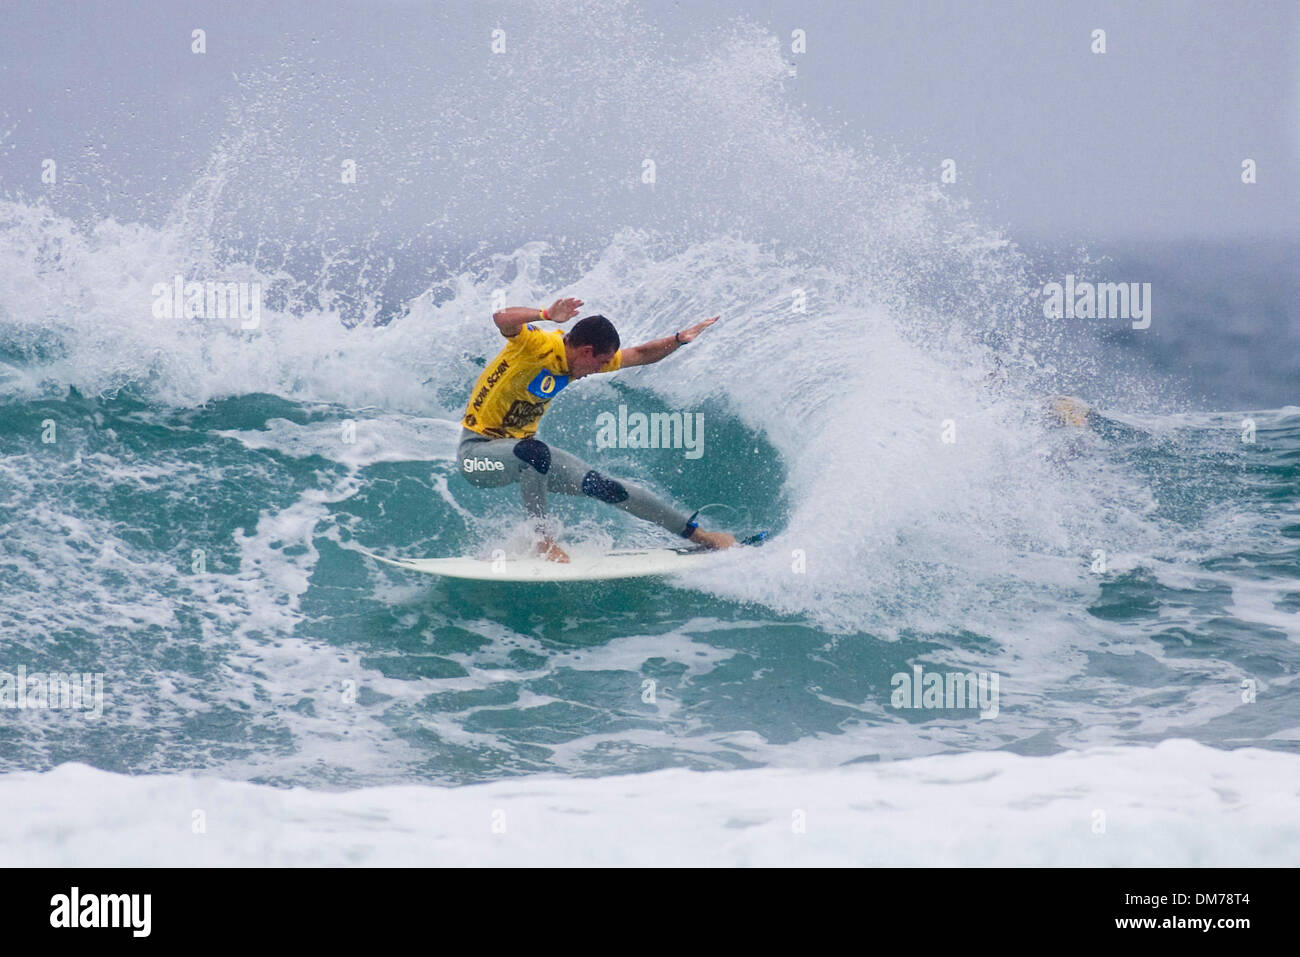 Nov 06, 2005; Florianopolis, Santa Catarina, BRAZIL; KIRK FLINTOFF (Sydney, NSW, Aus) scored a convincing victory in round one of the Nova Schin Festival Presented by Billabong at Imbituba, Brazil today. Flintoff advanced to round three, sidelining Brazilian's Renan Rocha and Peterson Rosa to the losers round. The Nova Schin Brazil is the tenth of 12 events on the 2005 Foster's Men - Stock Image